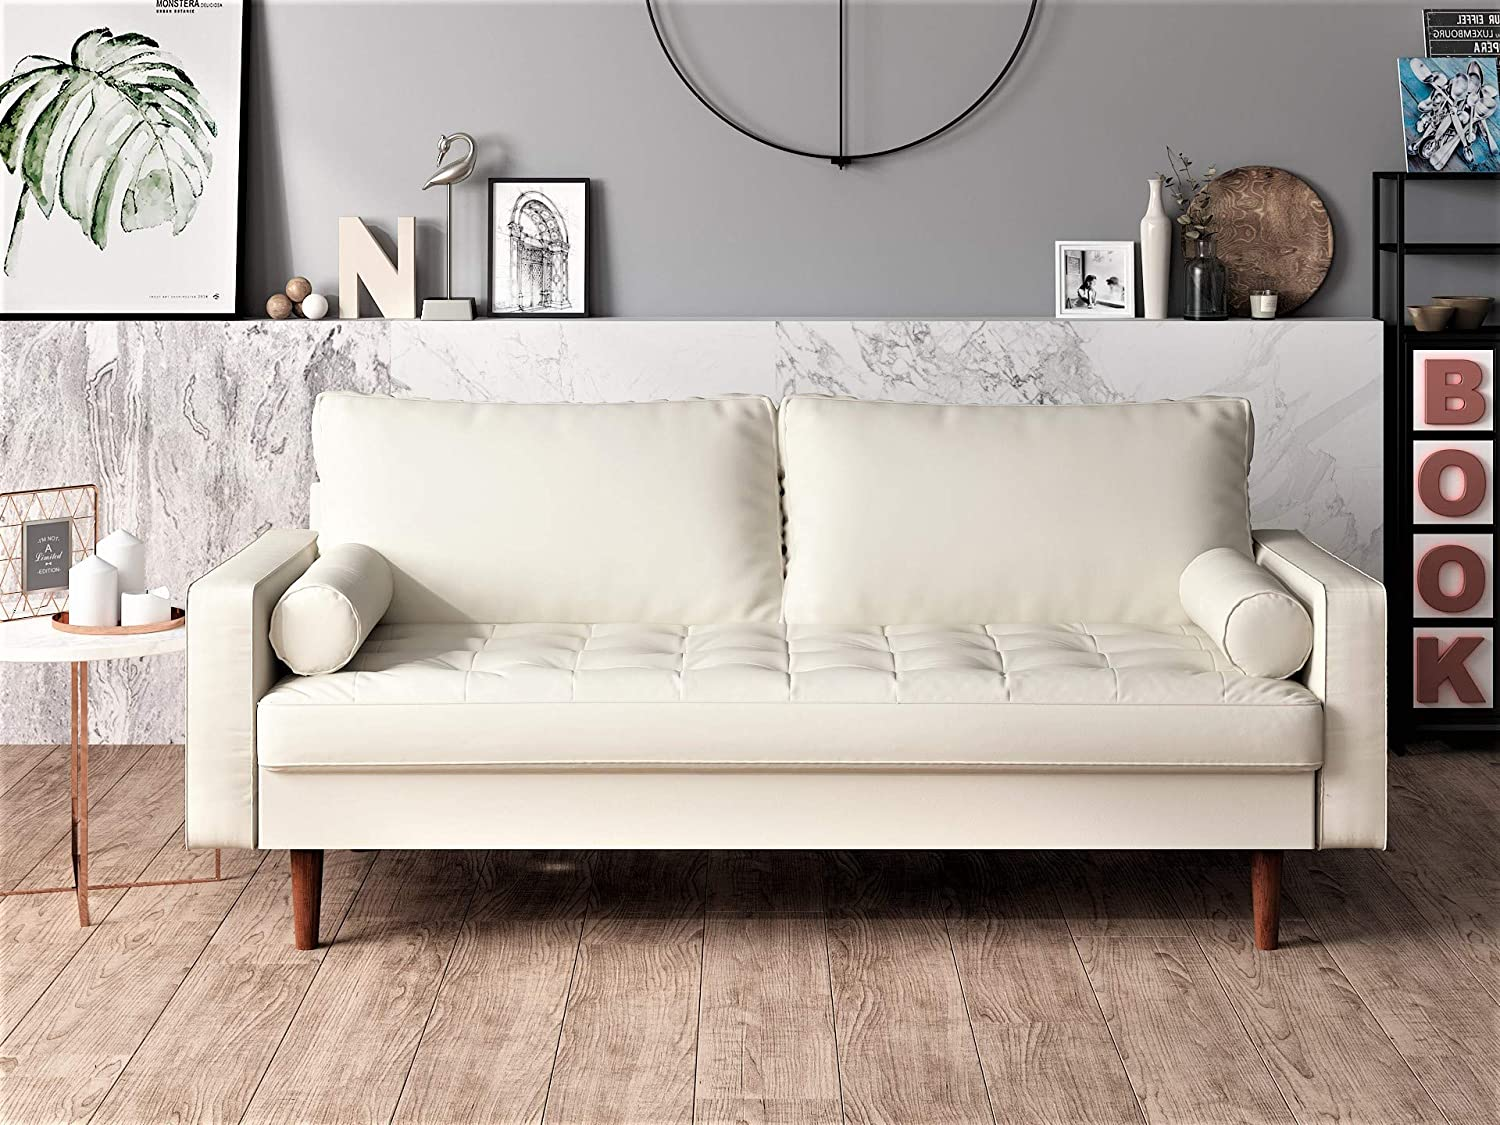 Magnificent Container Furniture Direct Orion Mid Century Modern Pu Leather Upholstered Living Room Loveseat With Bolster Pillows 50 39 White Machost Co Dining Chair Design Ideas Machostcouk